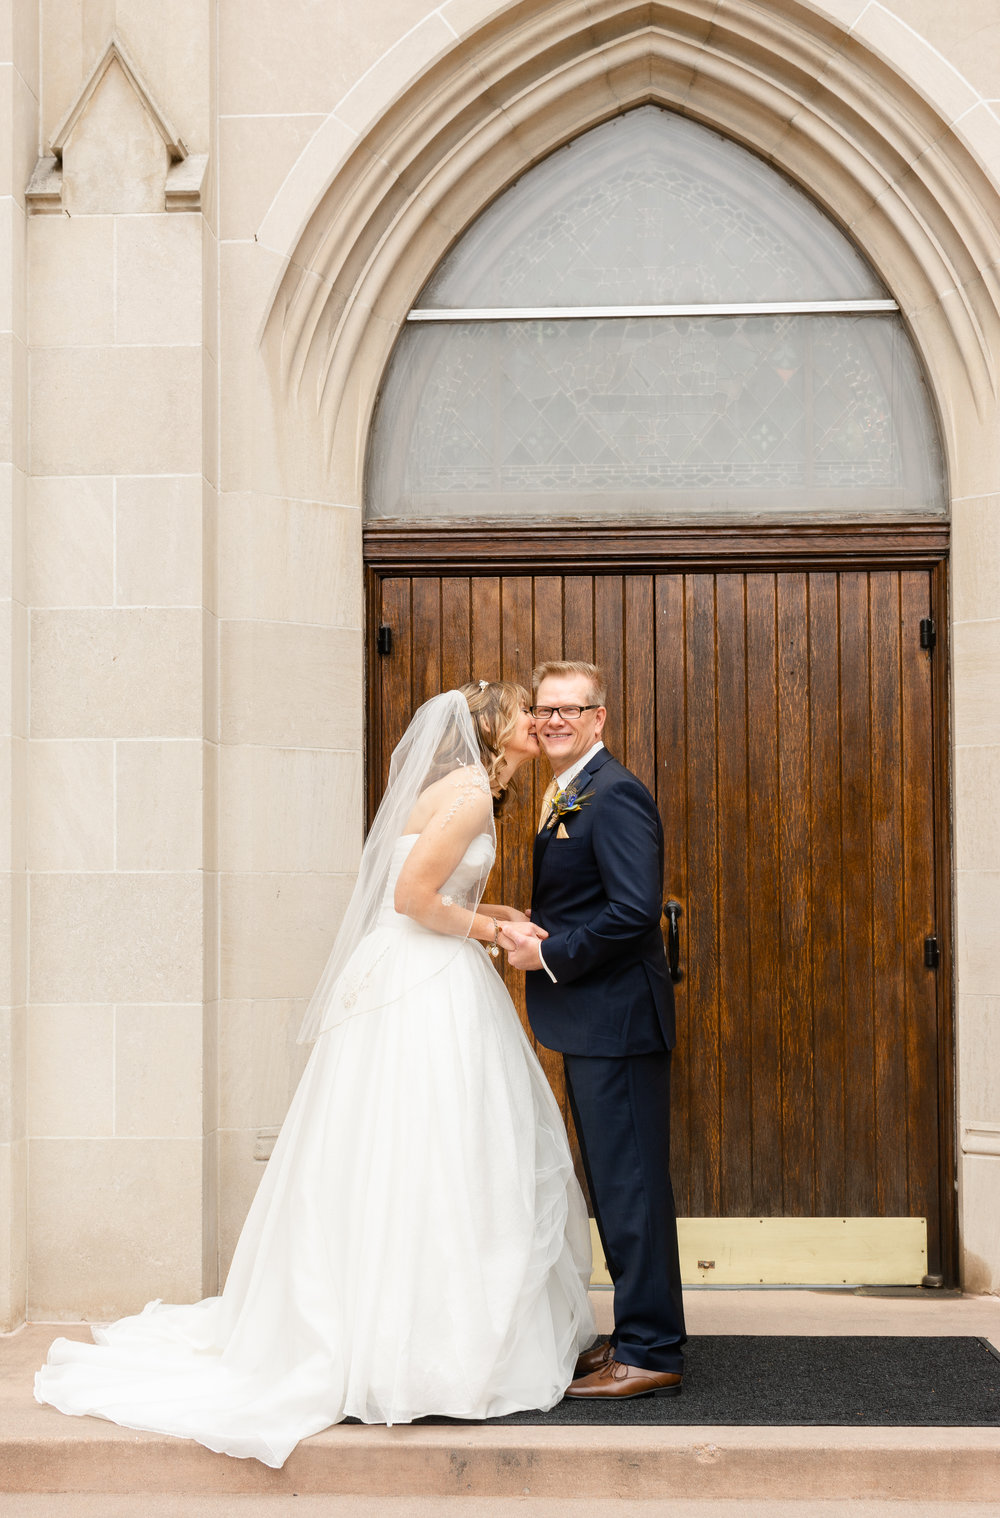 Wedding at Blessed Sacrament Catholic Church in Denver